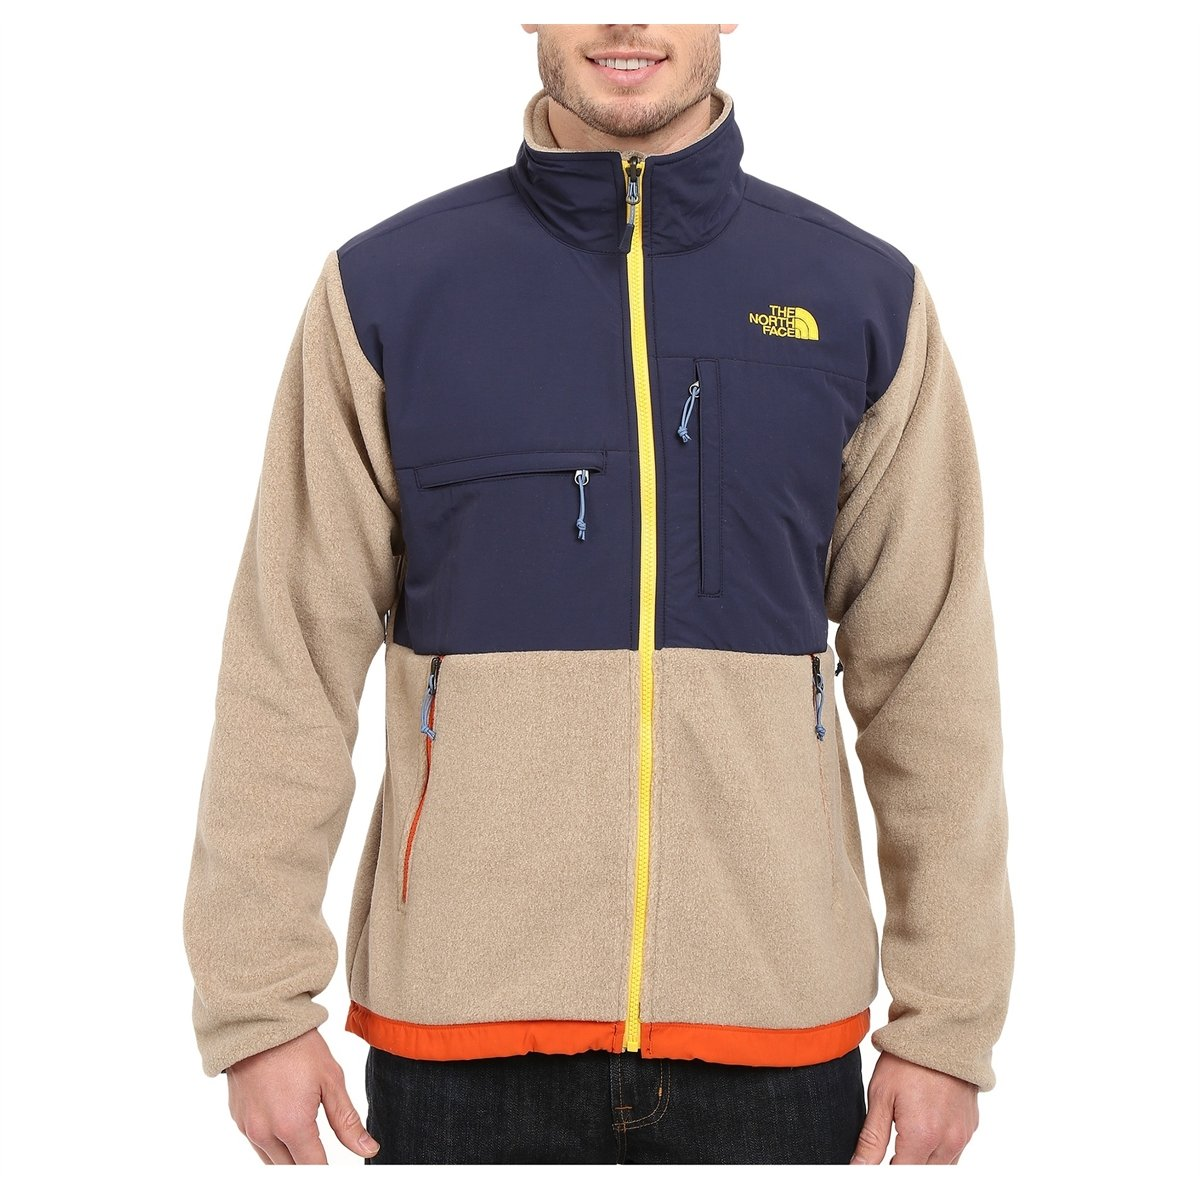 a1709cf4835a The North Face Mens Softshell Jacket 59 Amazon.com The North Face Mens  Denali Fleece Sports Outdoor ...